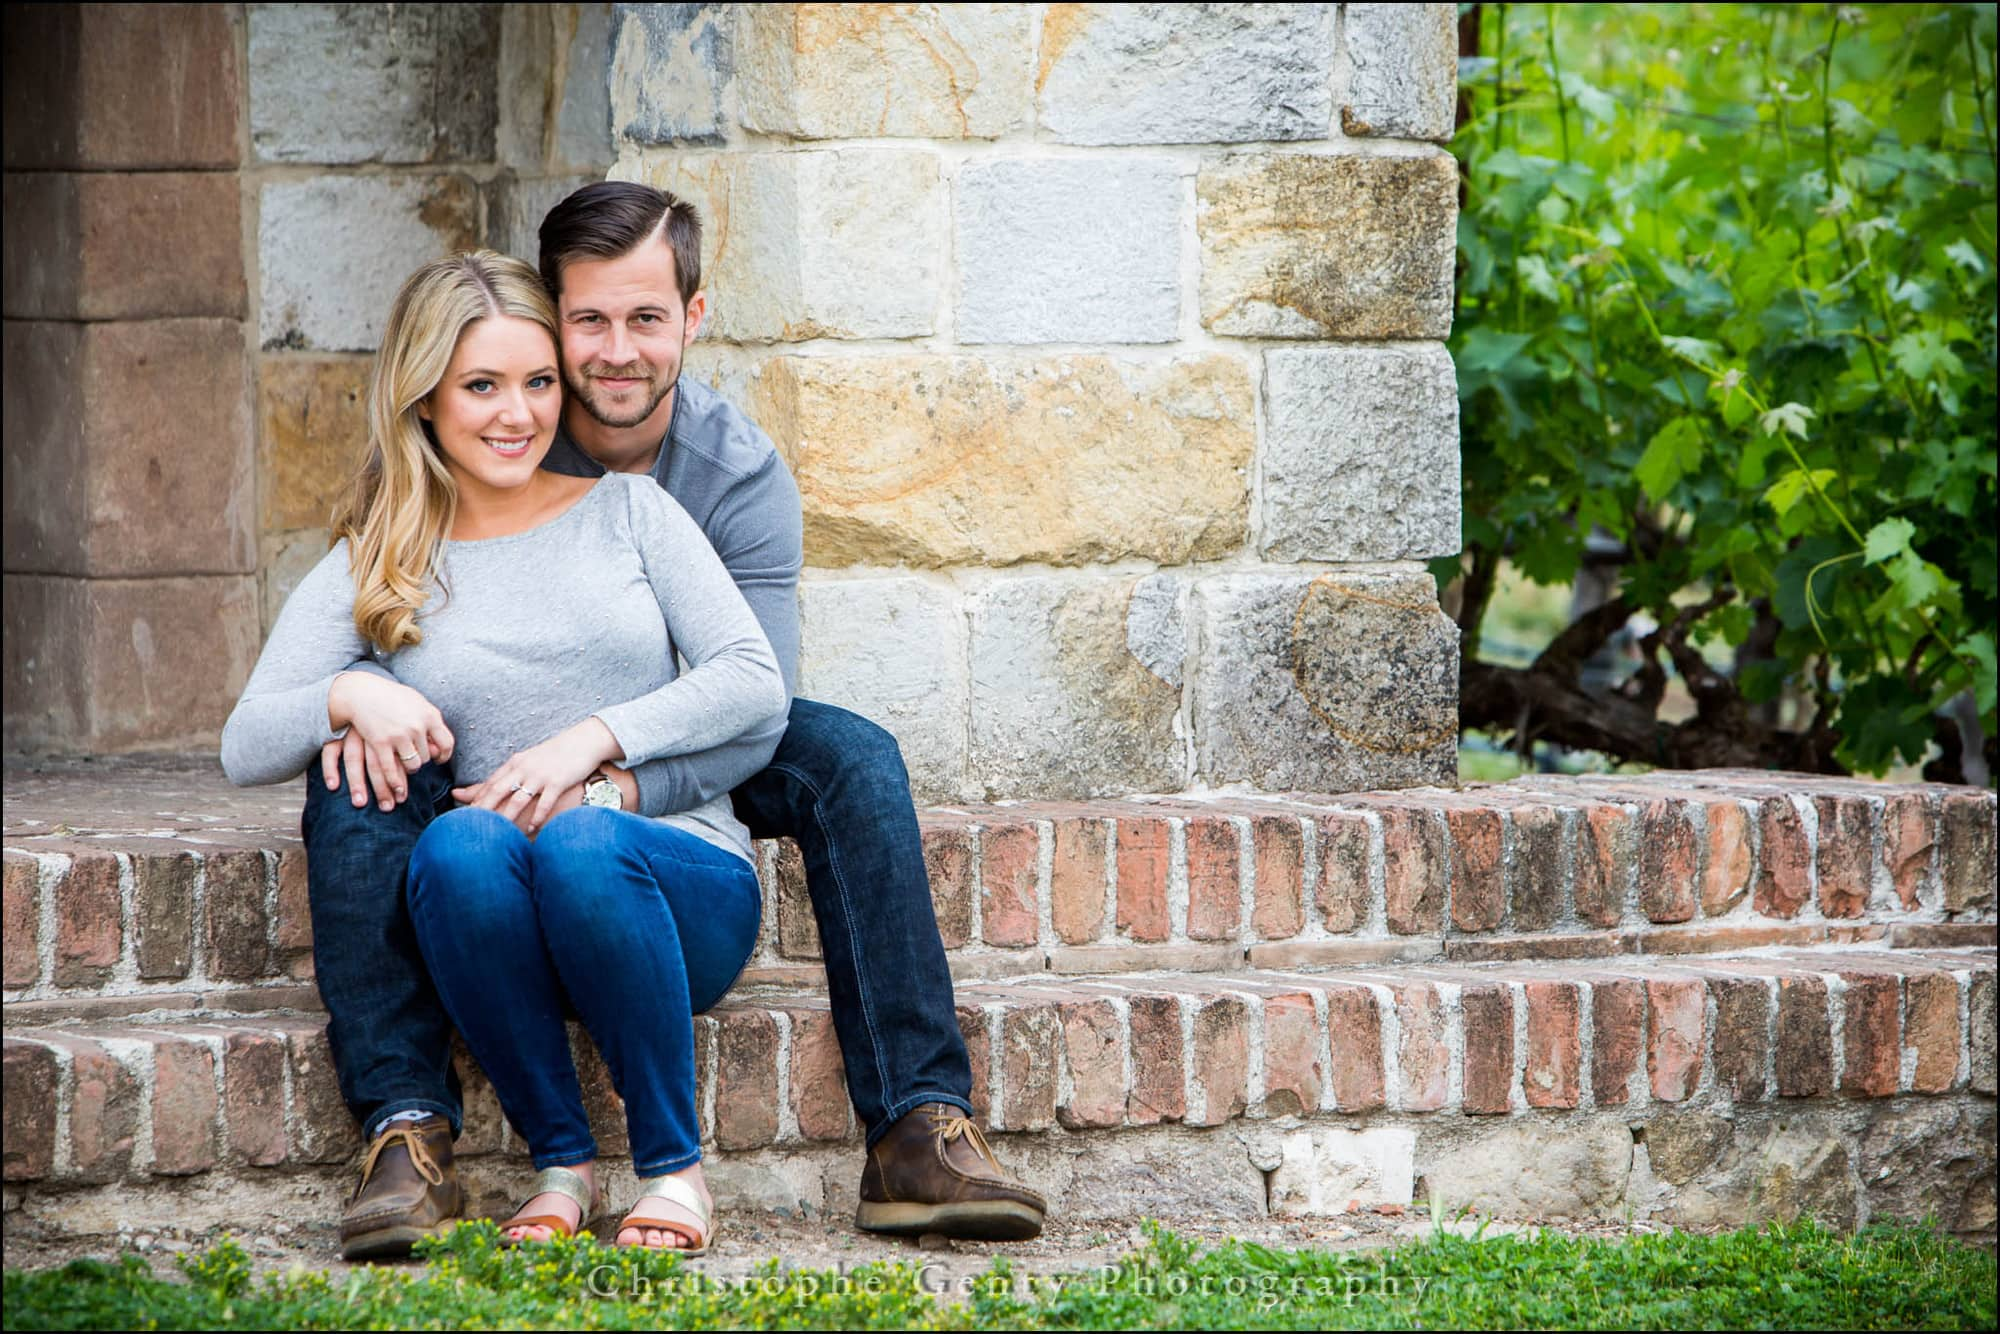 Engagement Photography at Castello di Amorosa in The Napa Valley, CA